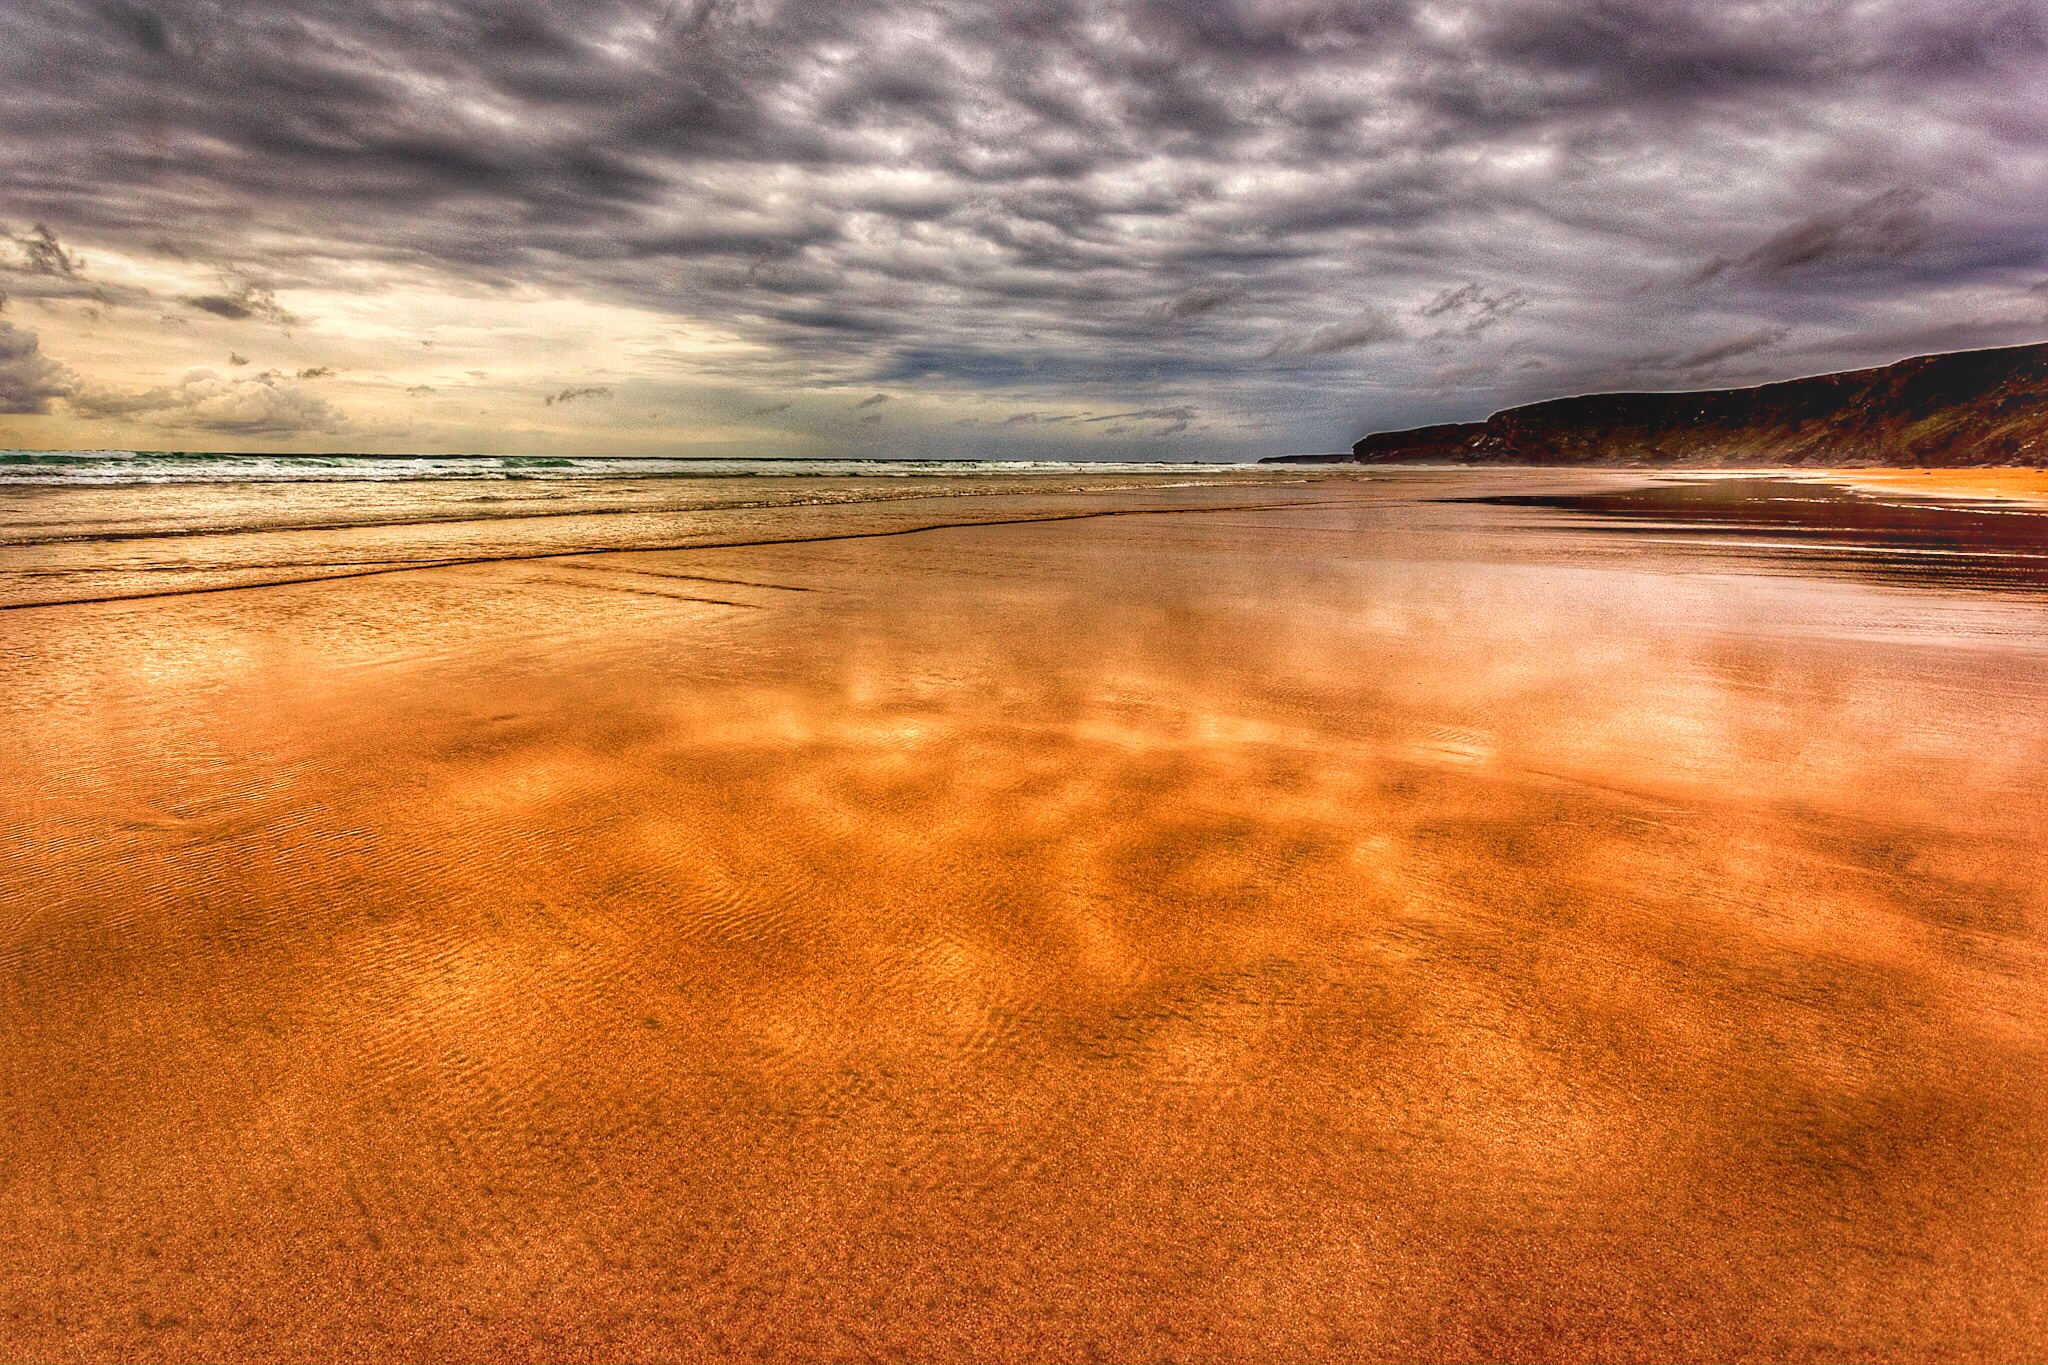 Snapseed edit of the picture of Watergate Bay beach